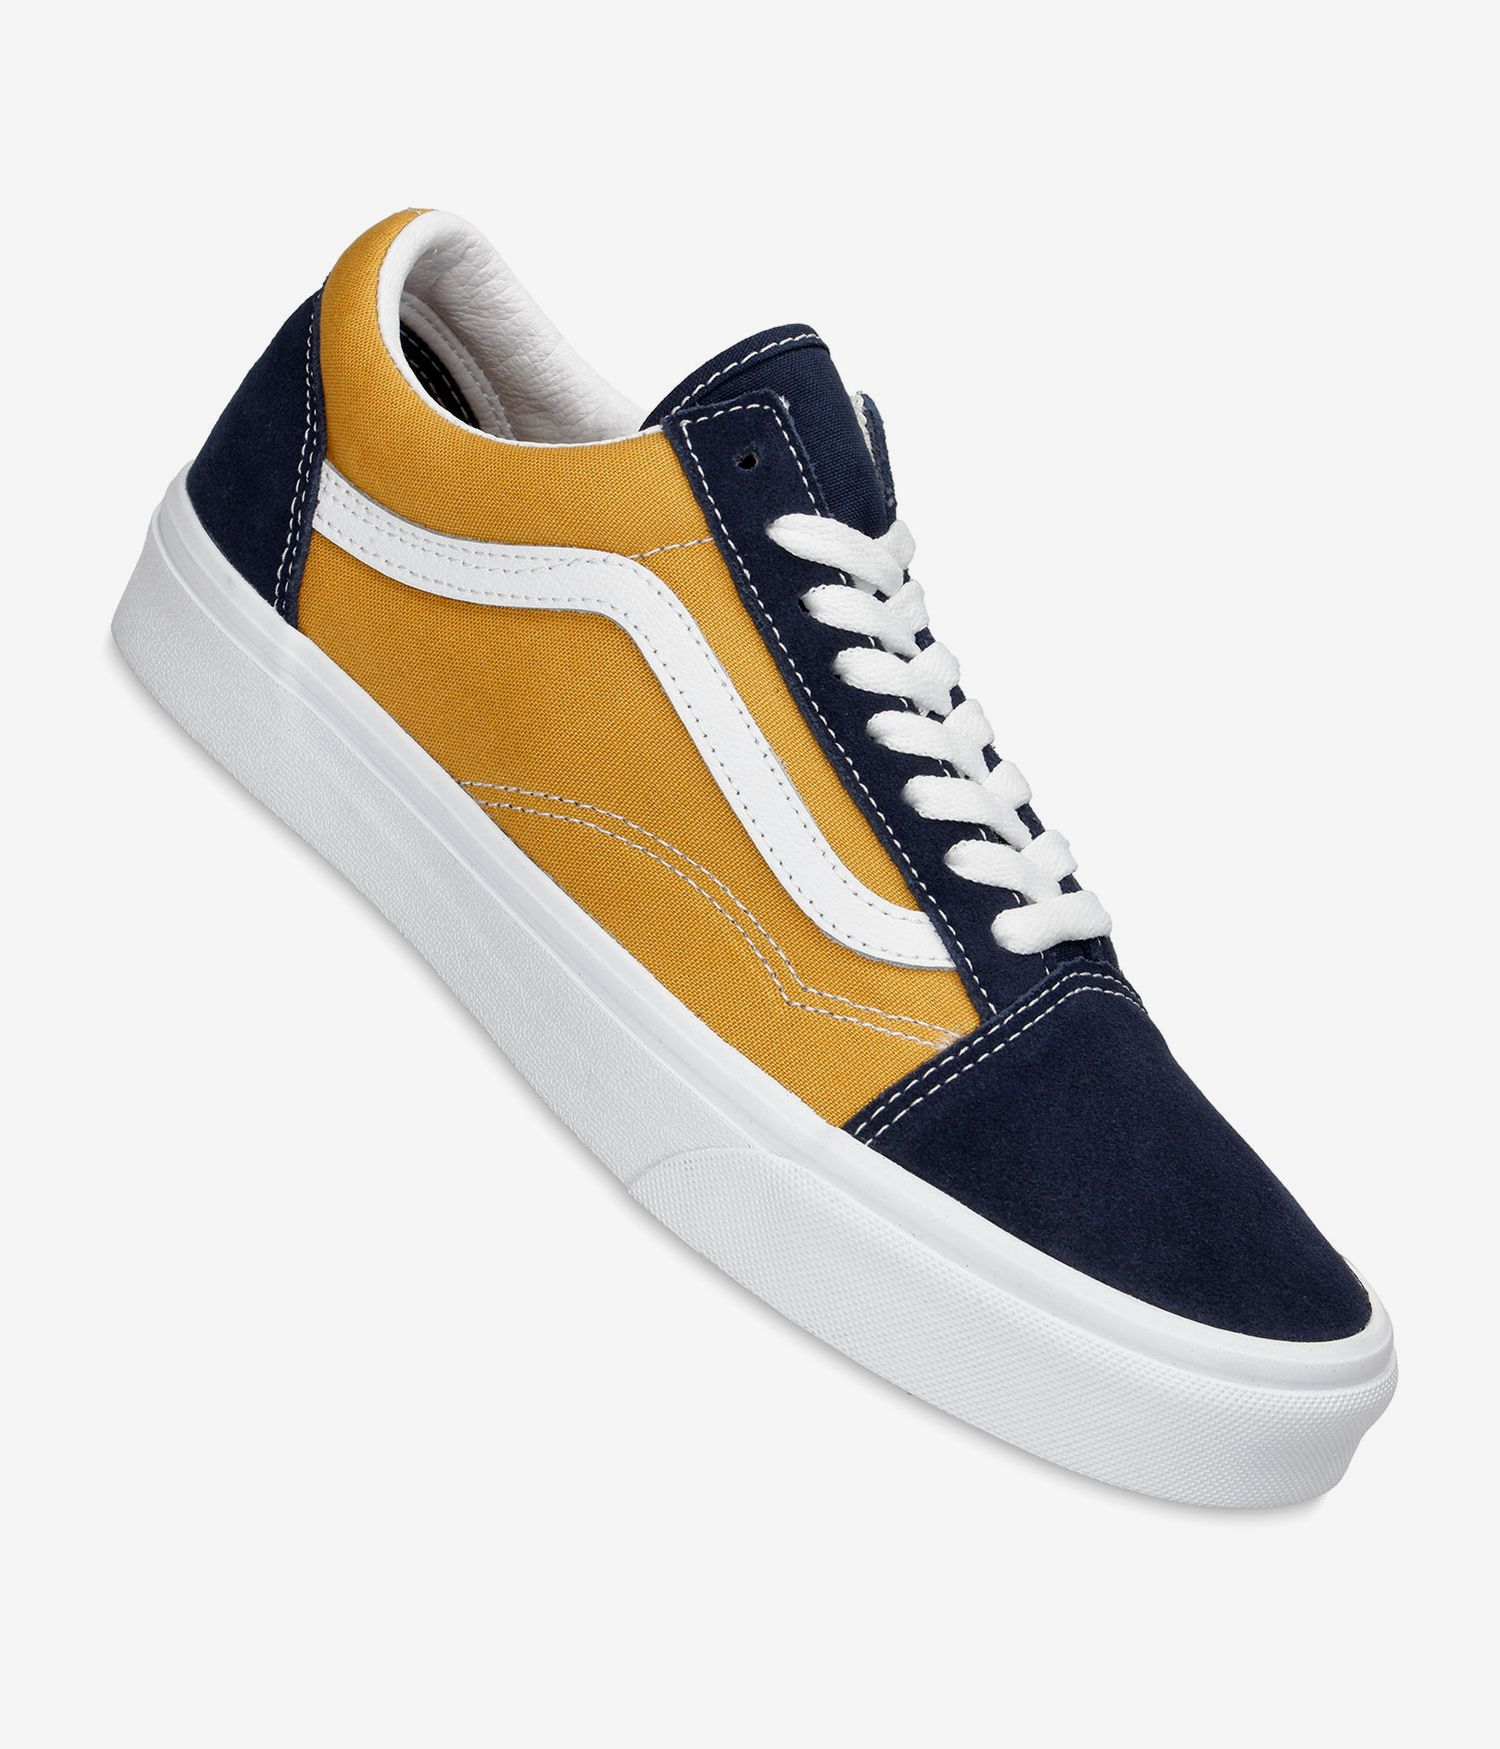 TÊNIS VANS OLD SKOOL DRESS BLUES SAFFRON